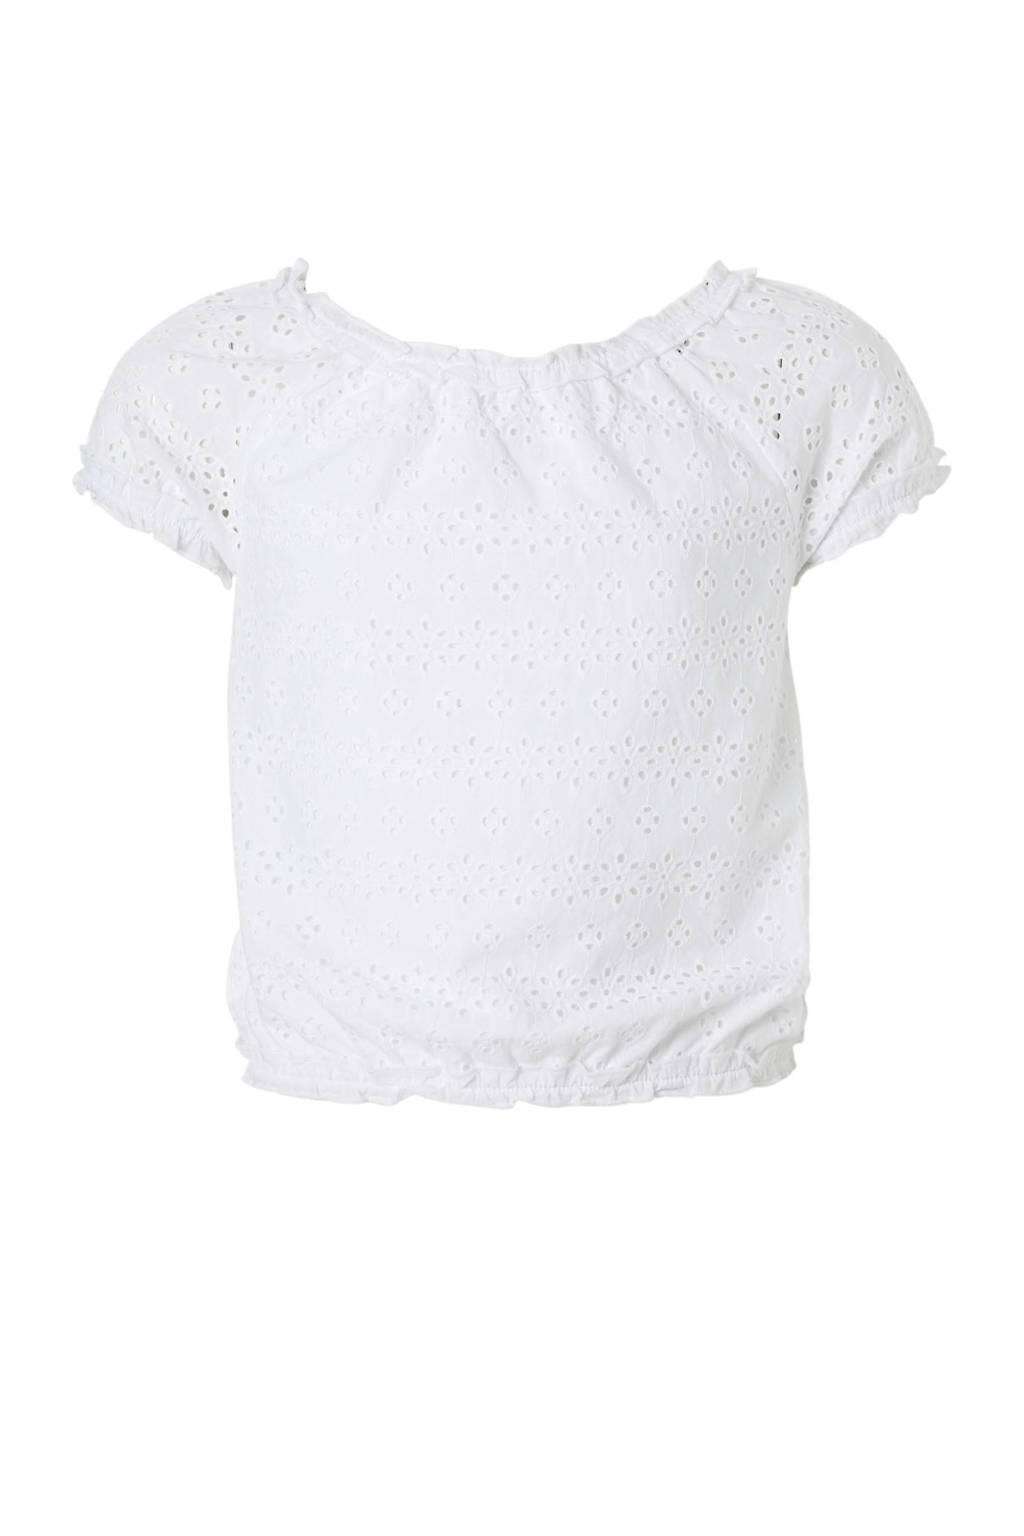 C&A Here & There broderie top wit, Wit